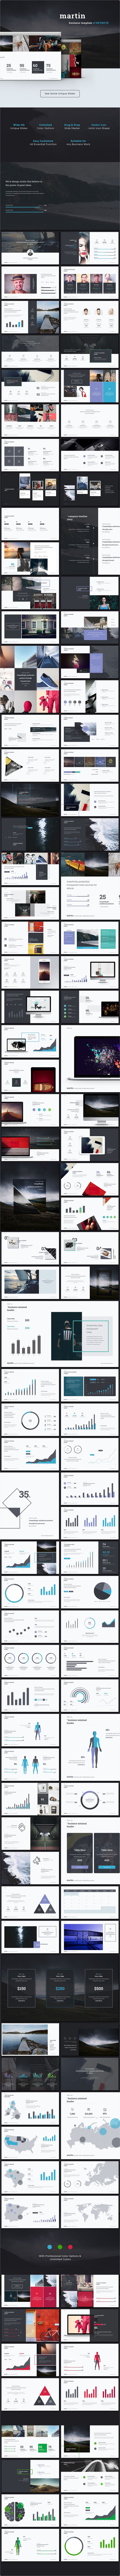 Martin Business Creative Template  Get a modern Keynote Presentation that is beautifully designed and functional. This slides comes with infographic elements, charts graphs and icons.  This pres...